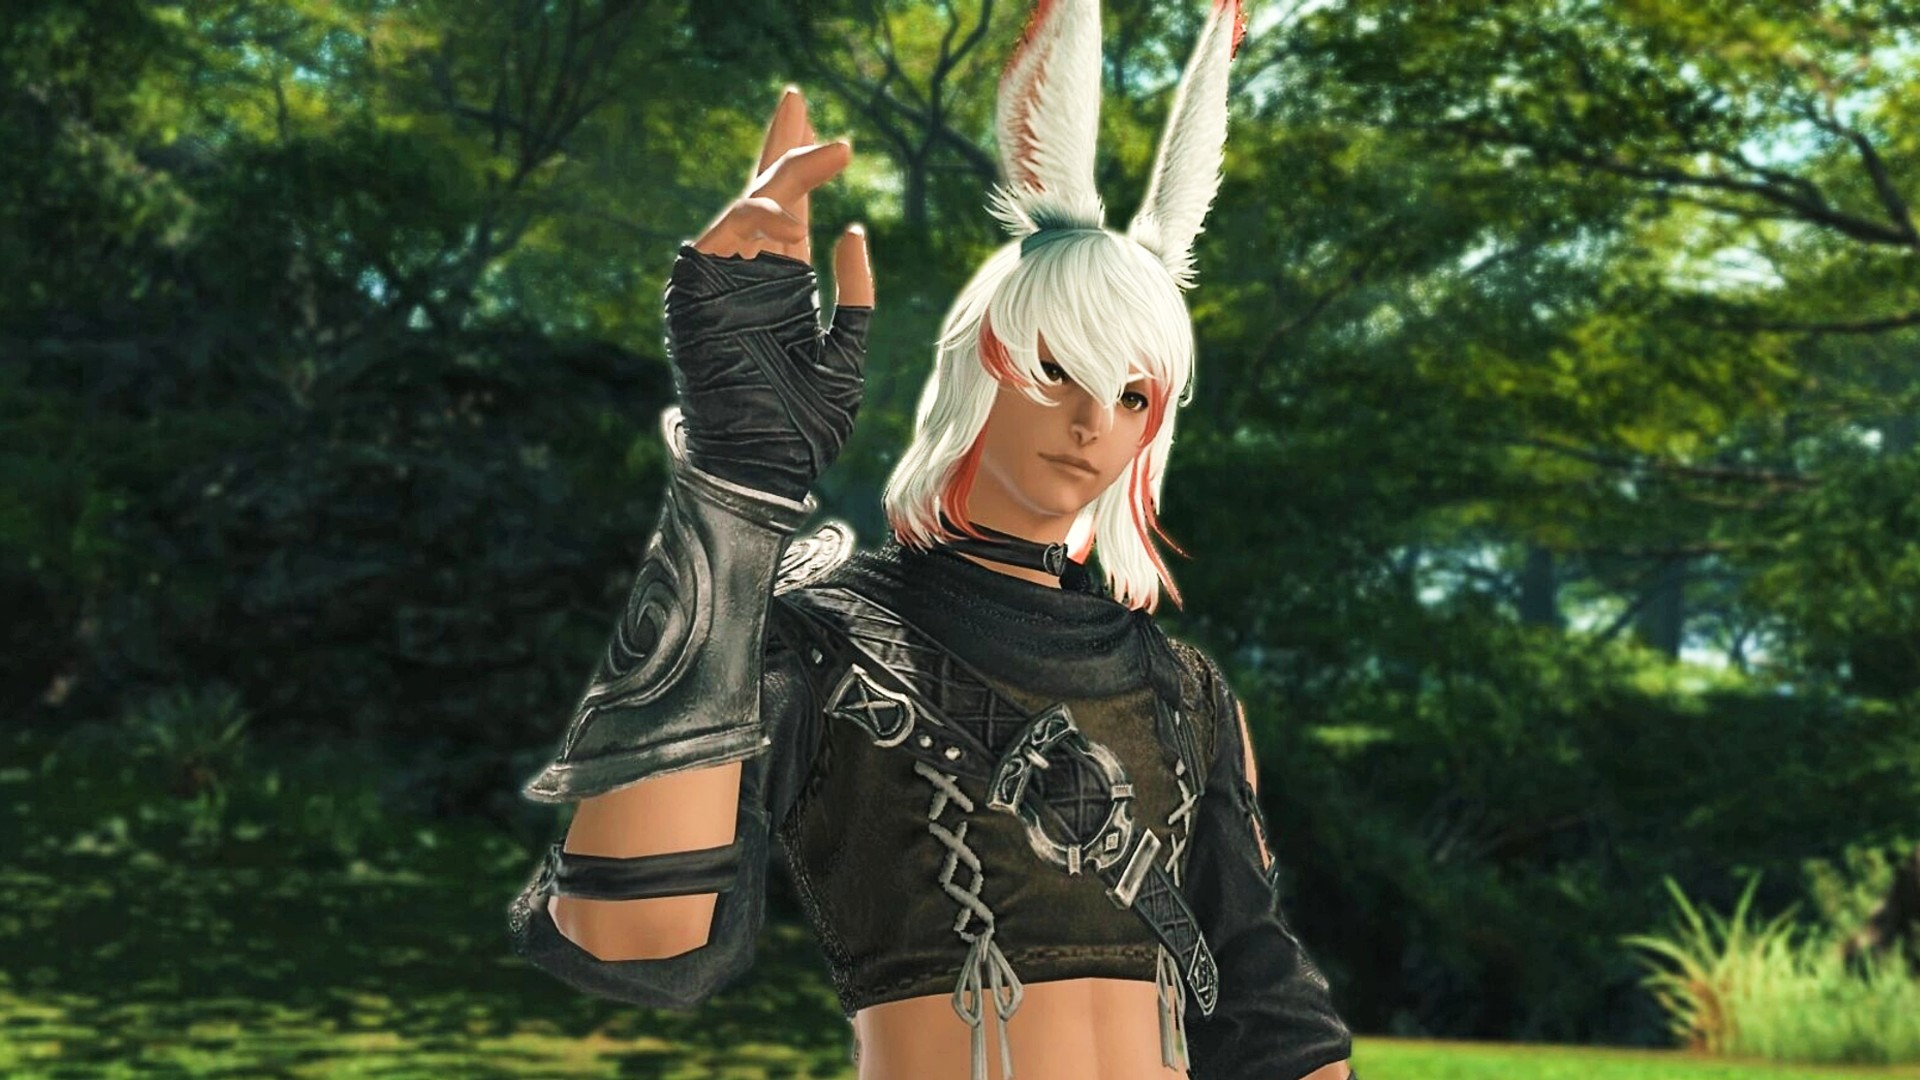 FFXIV is getting bunny boys because artists used their free time making it happen